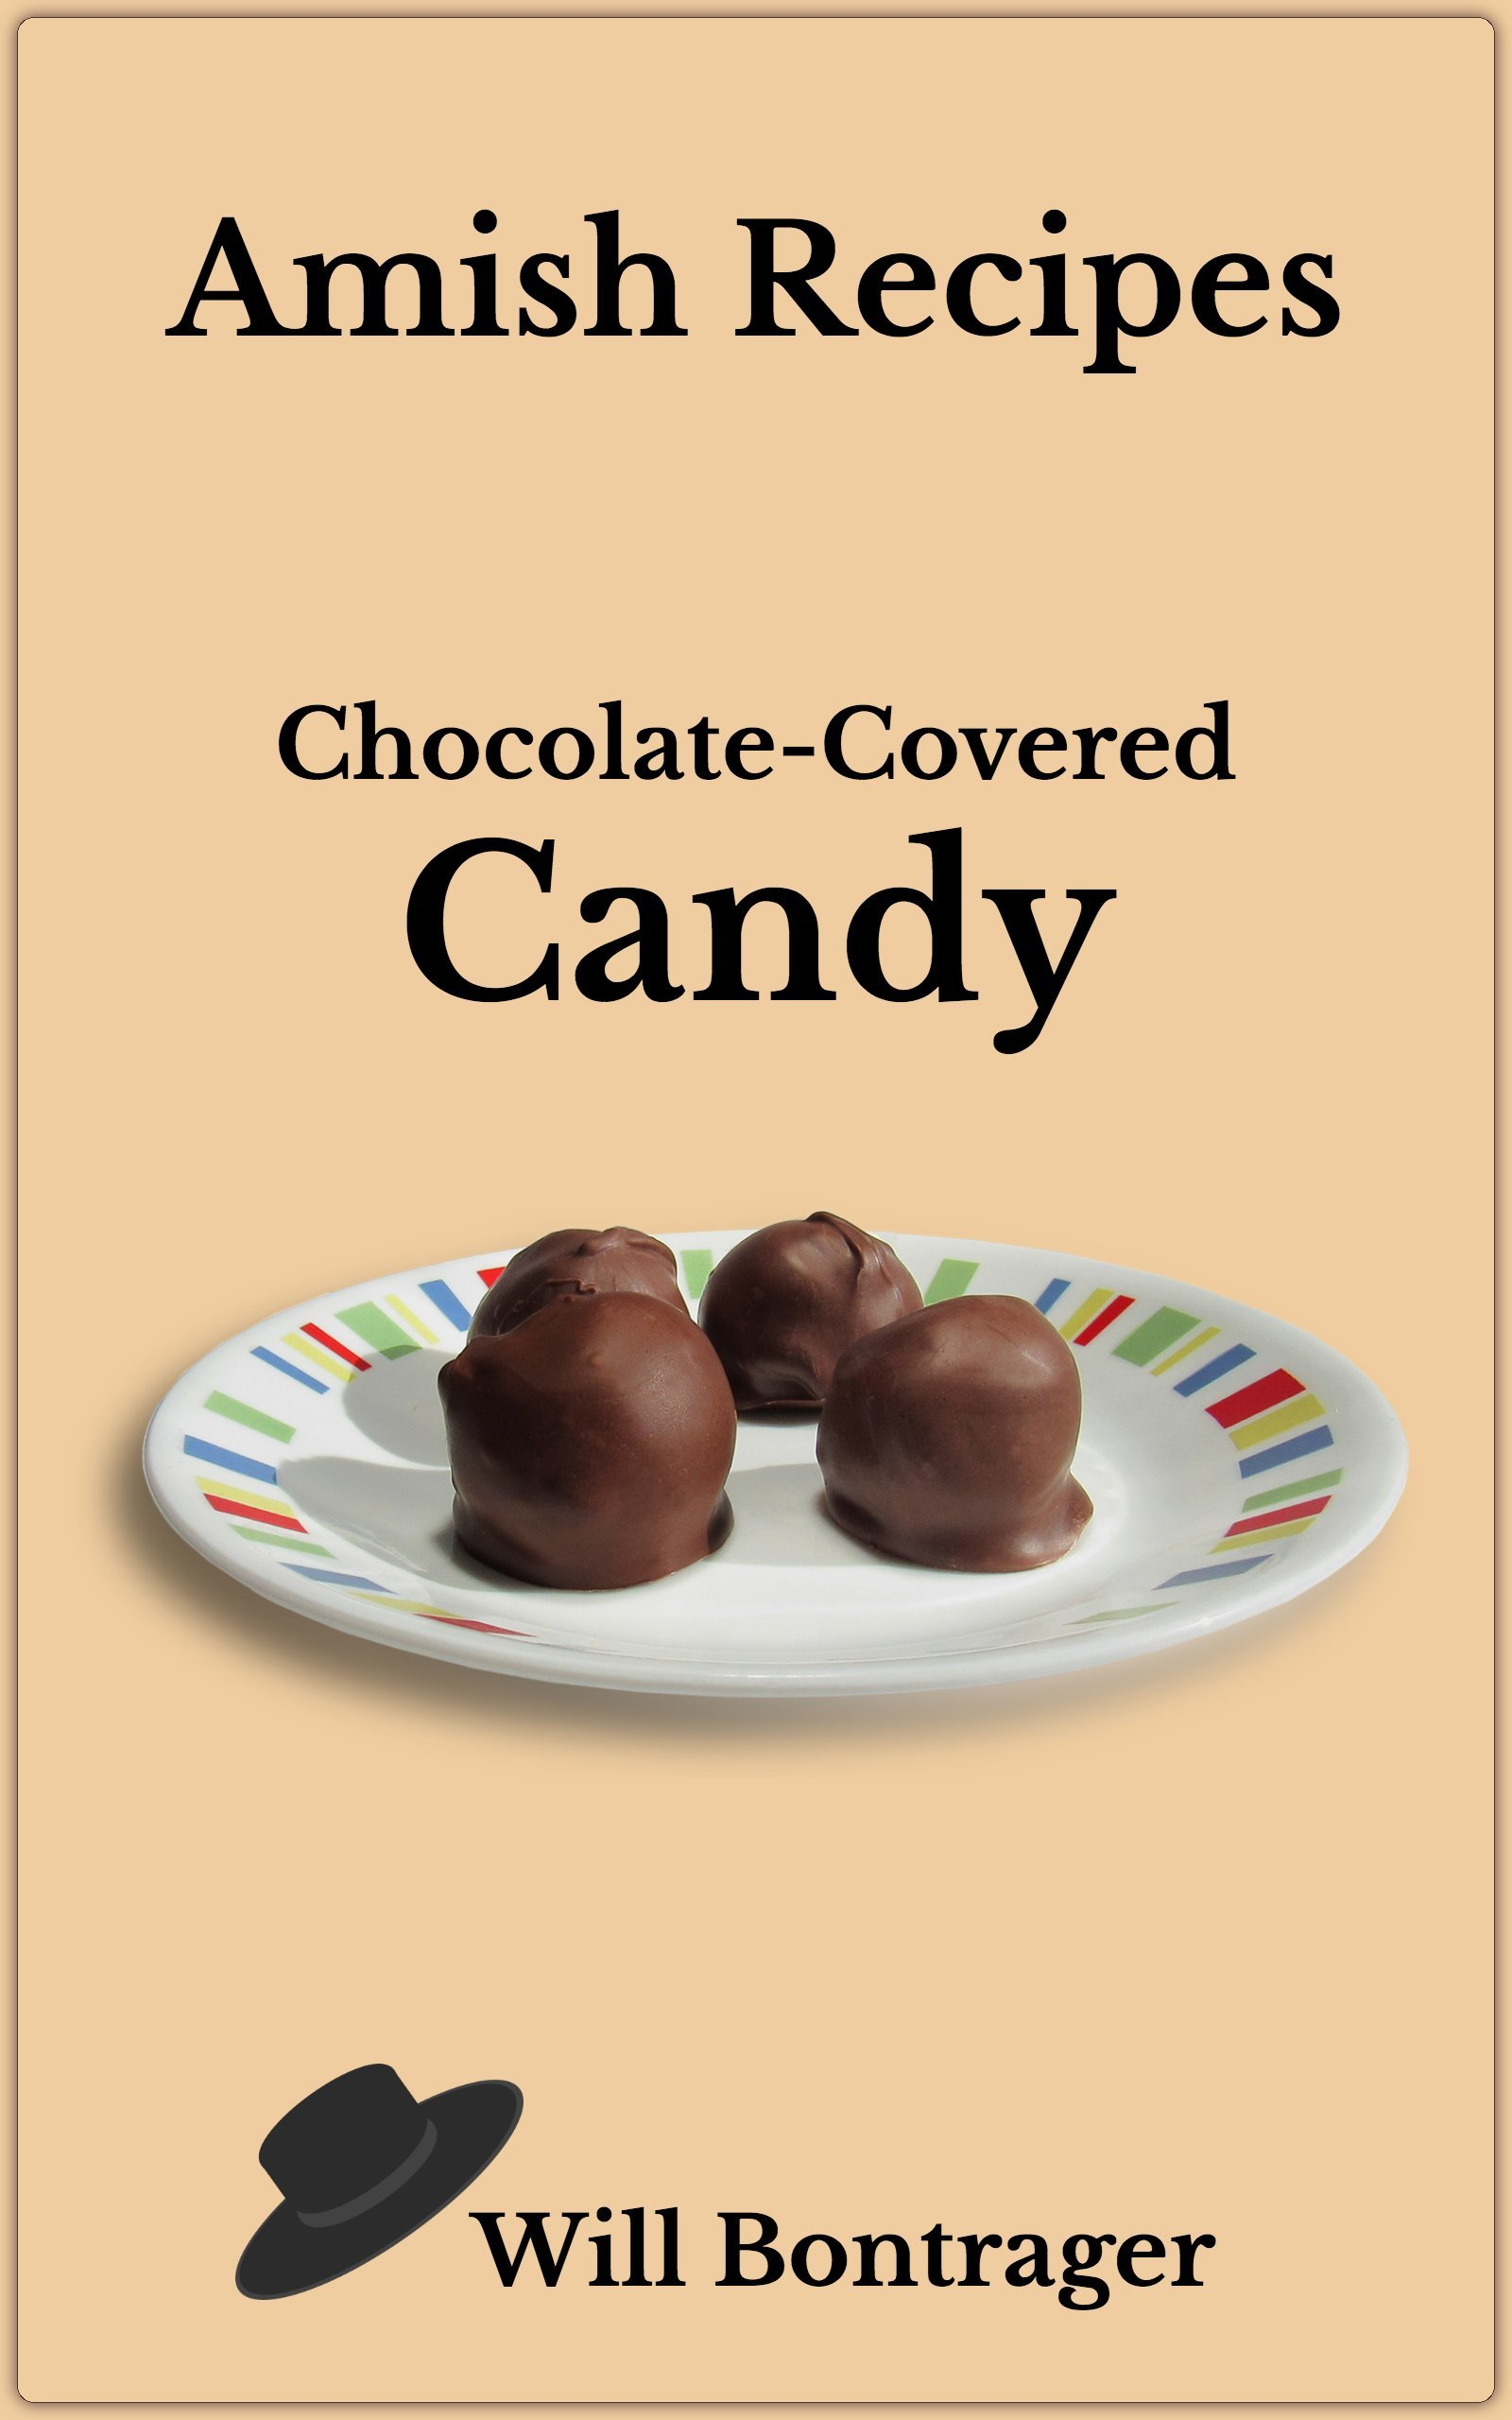 Amish Recipes; Chocolate-Covered Candy